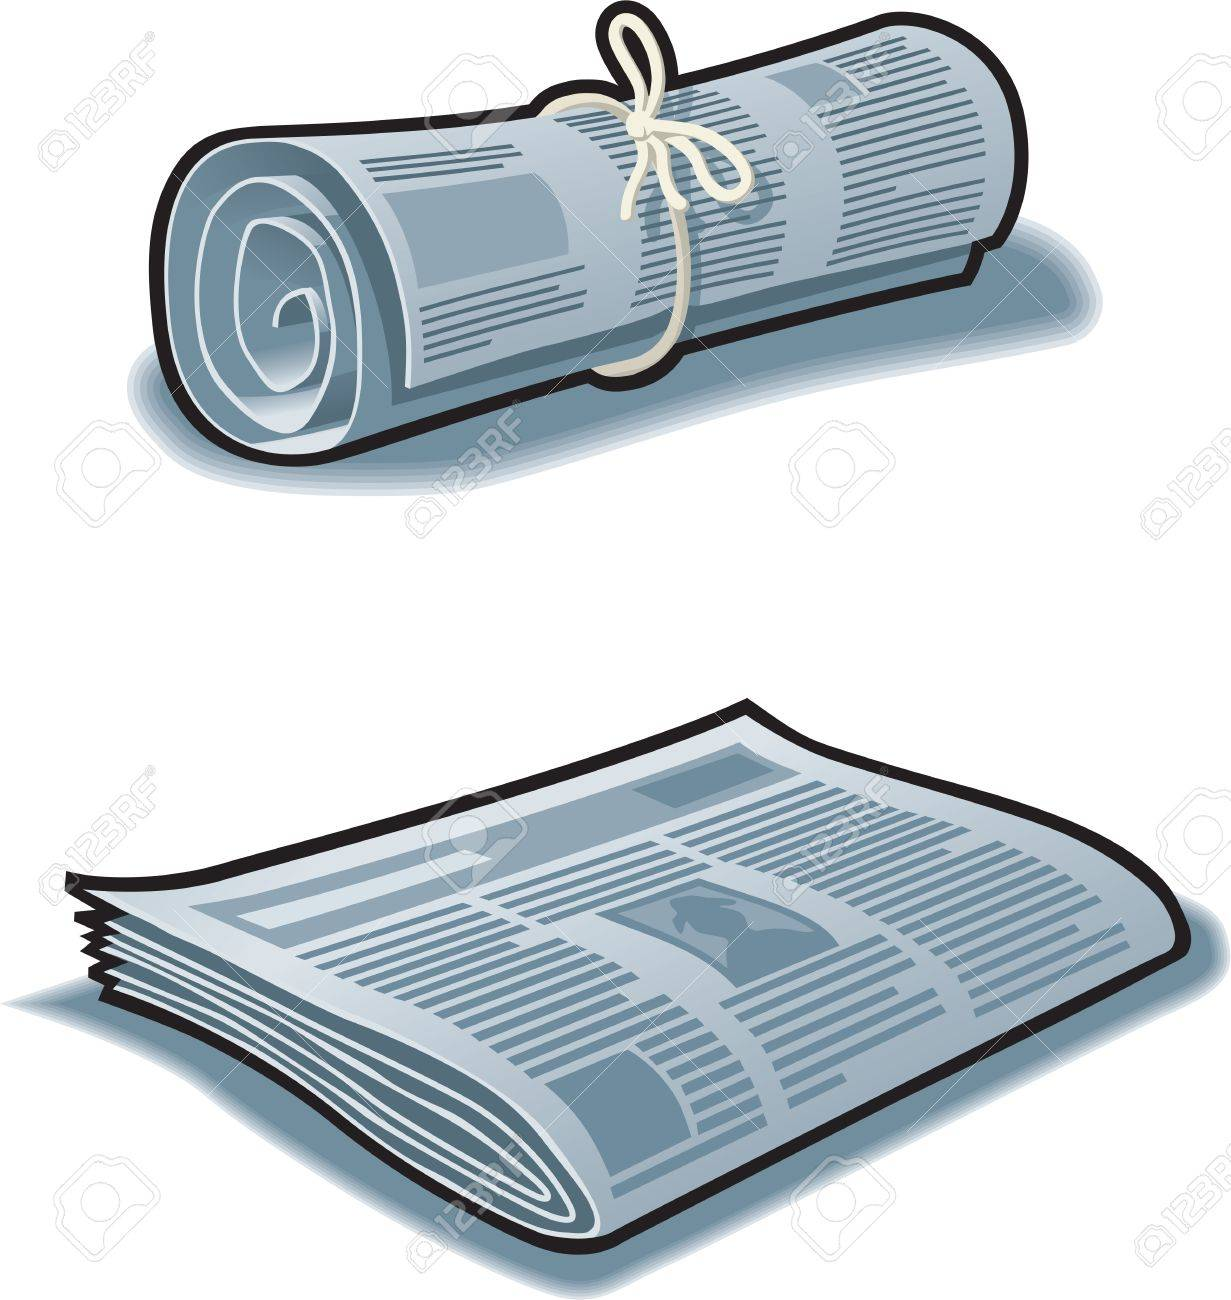 newspapers rolled up with string and flat. royalty free cliparts